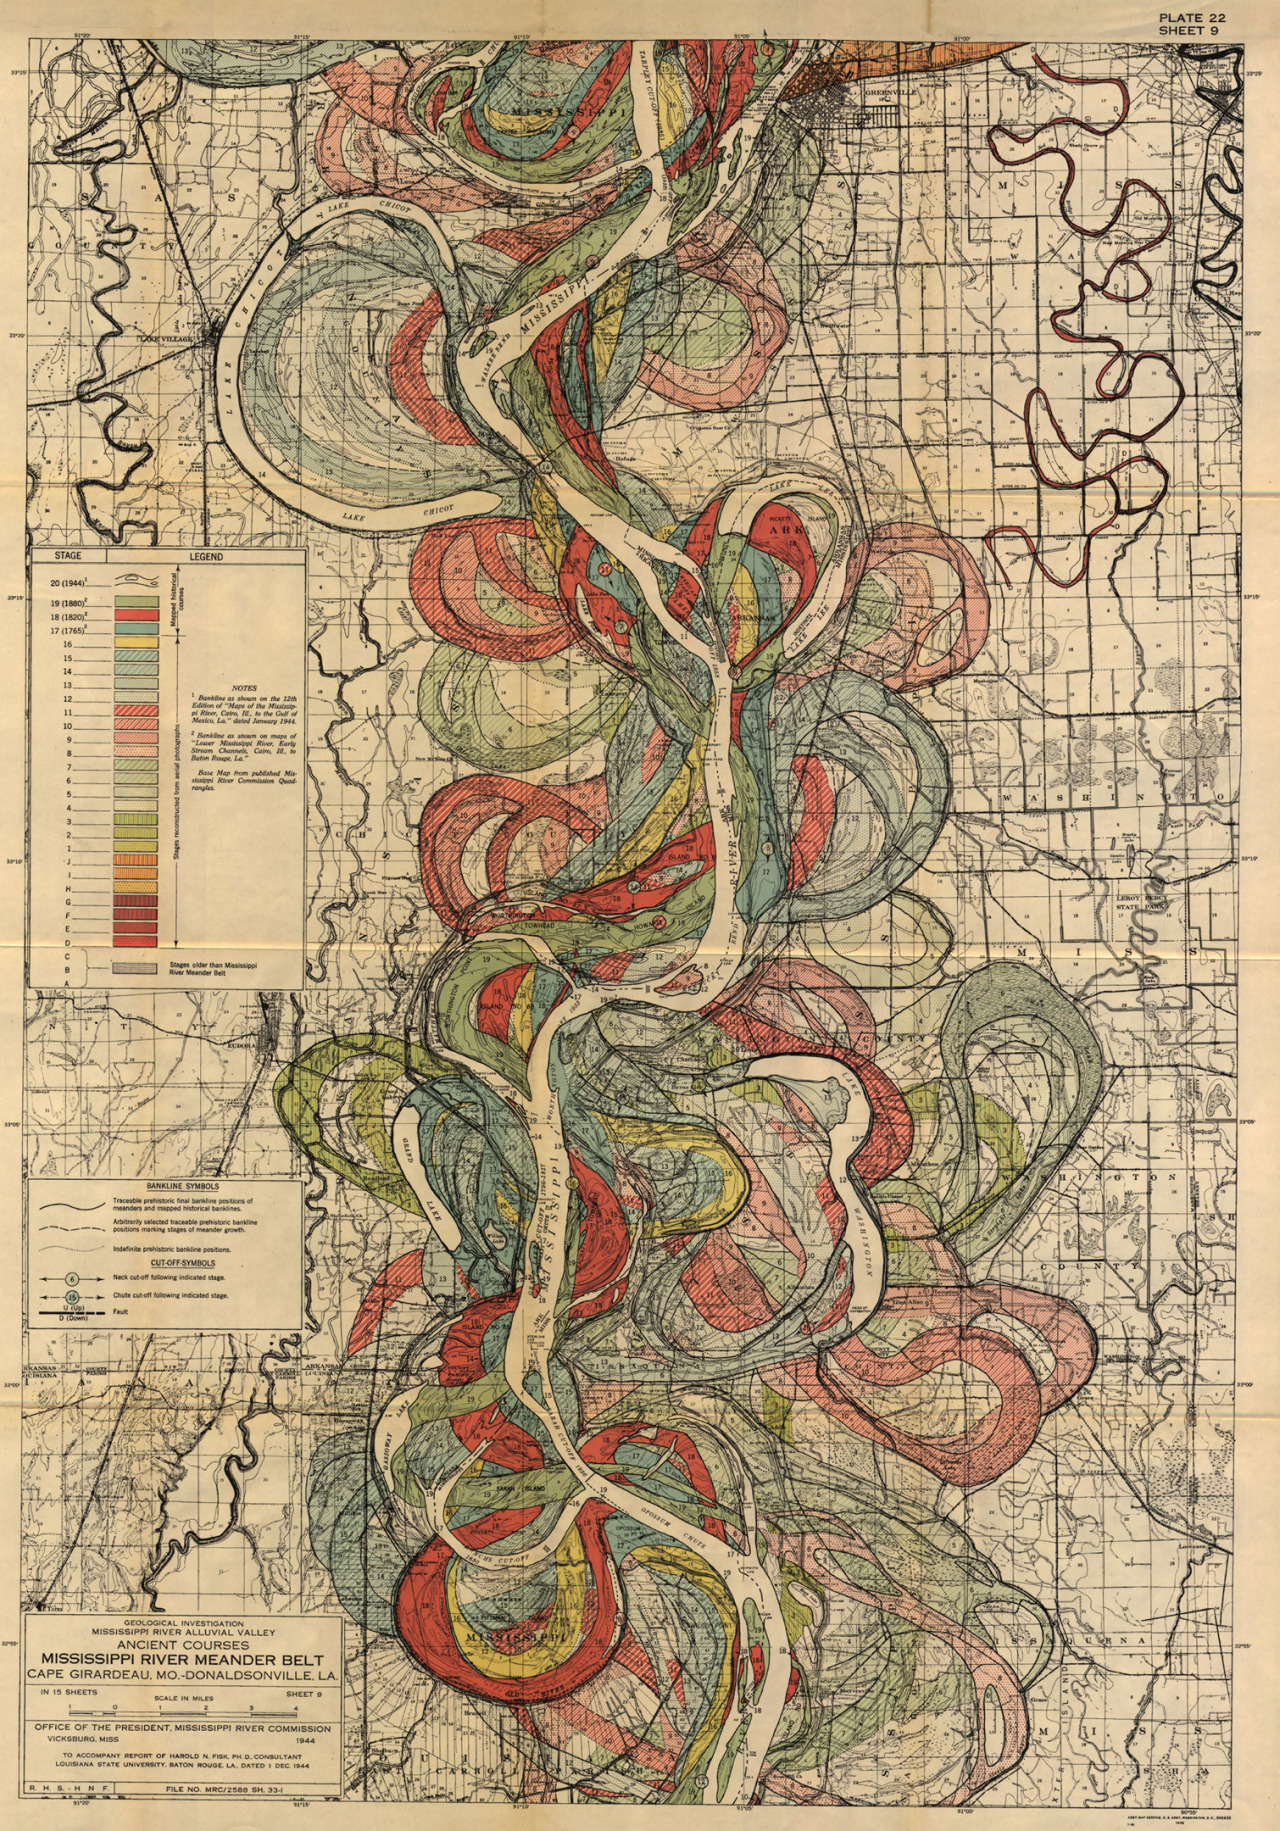 how-the-paths-of-the-mississippi-changed-in-the-past-3